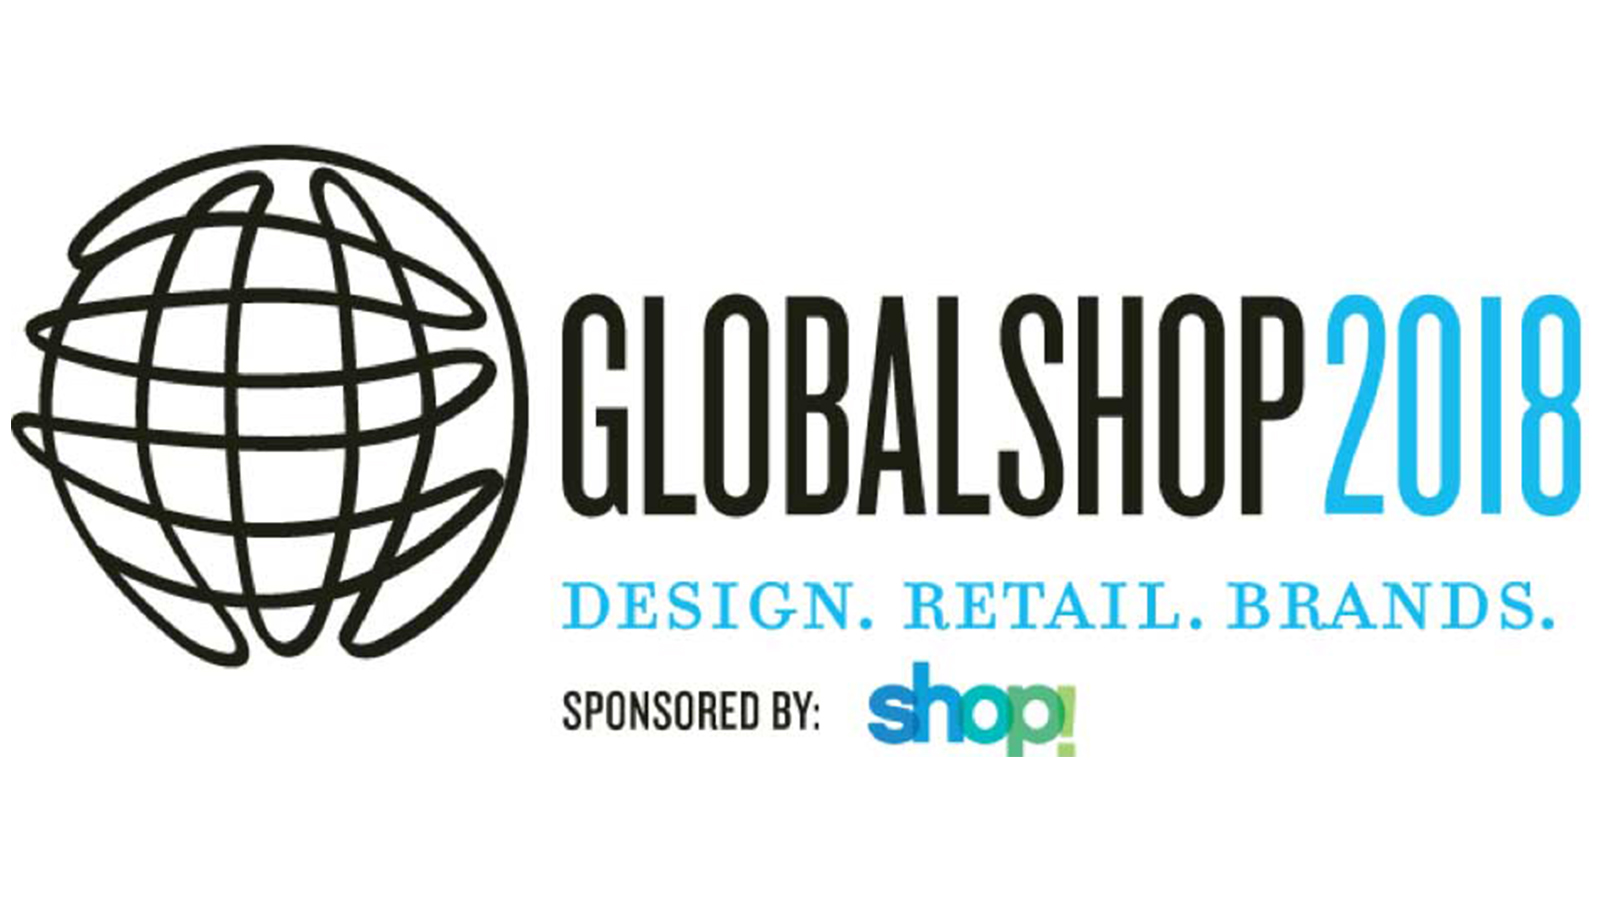 Global Shop Tradeshow